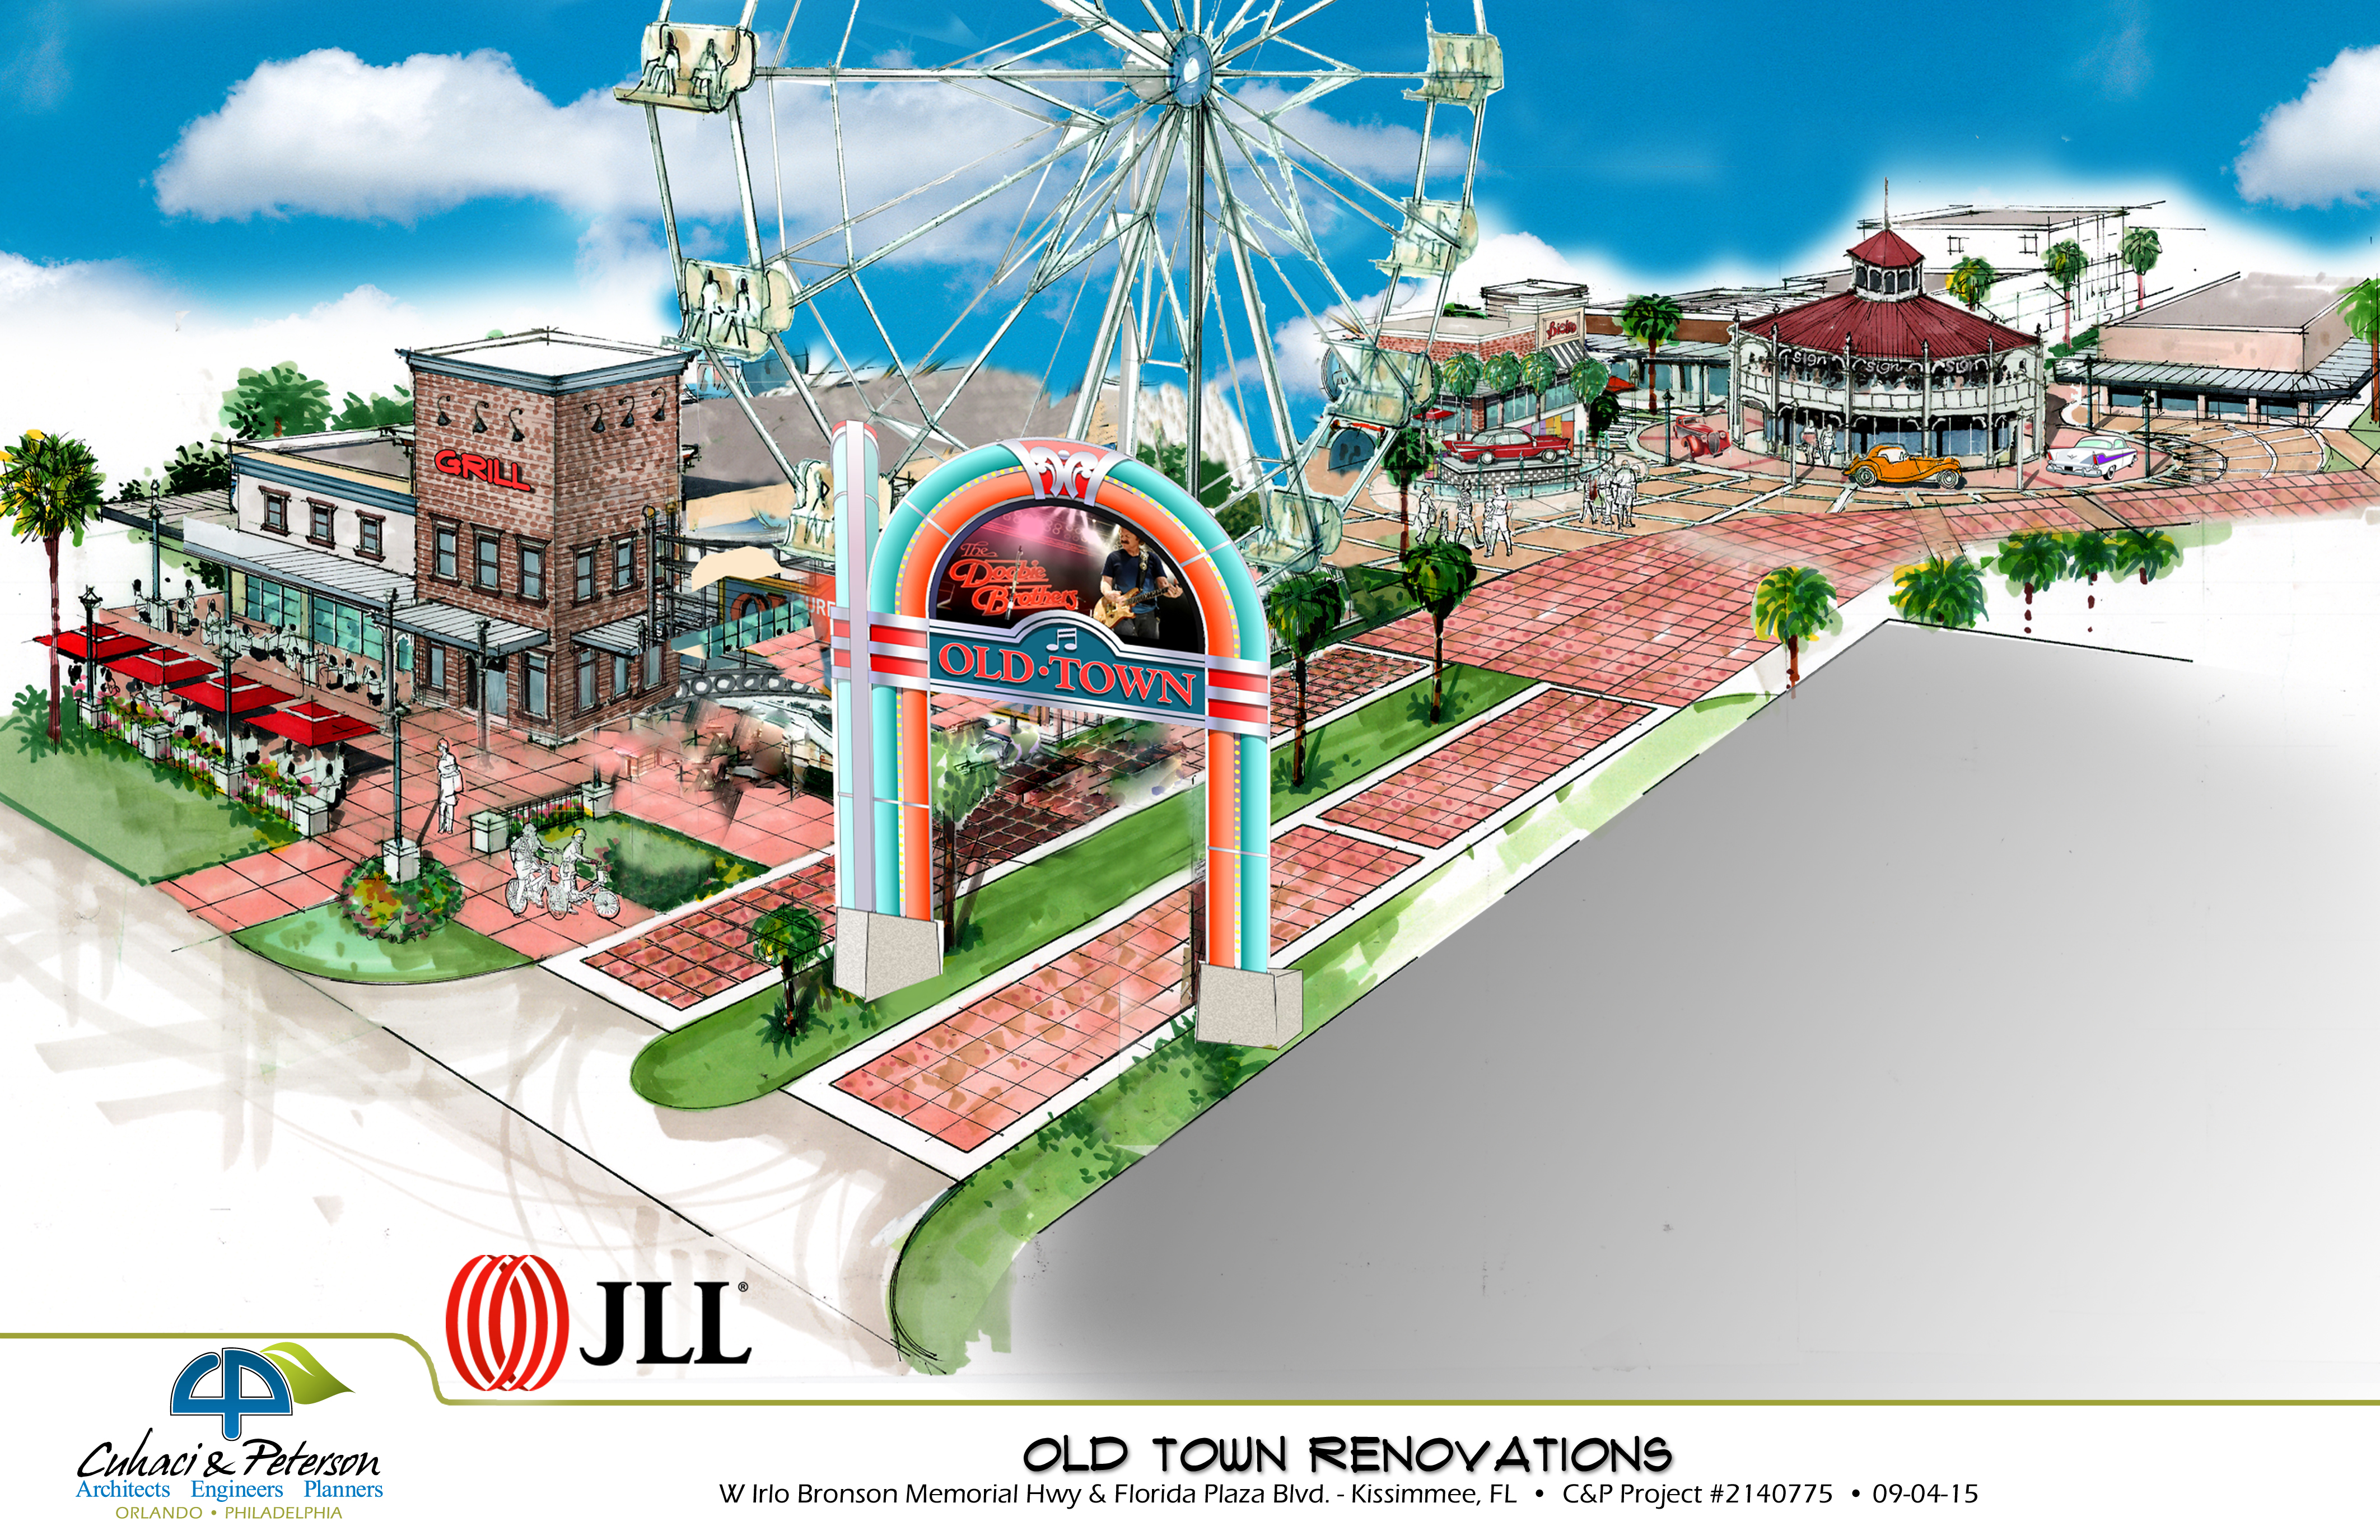 Old Town Kissimmee Halloween 2020 Old Town announces renovations to celebrate 30th anniversary